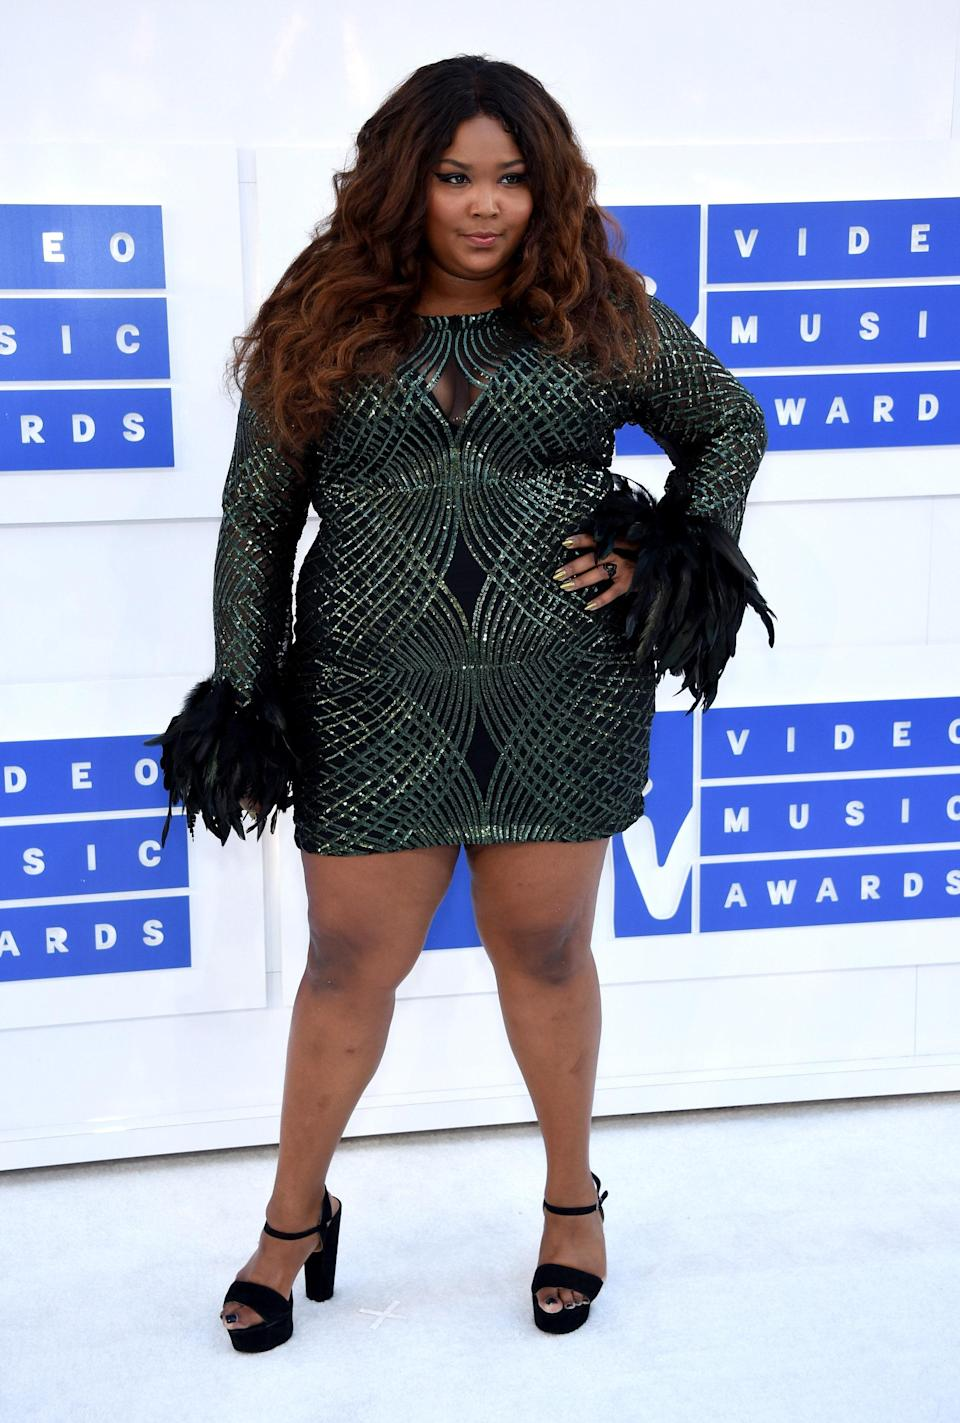 Lizzo's penchant for feathers could be an indication that she knew she was born to fly. Before her big break, she donned this feather-trimmed, forest green mini dress to the MTV Music Awards in 2016.